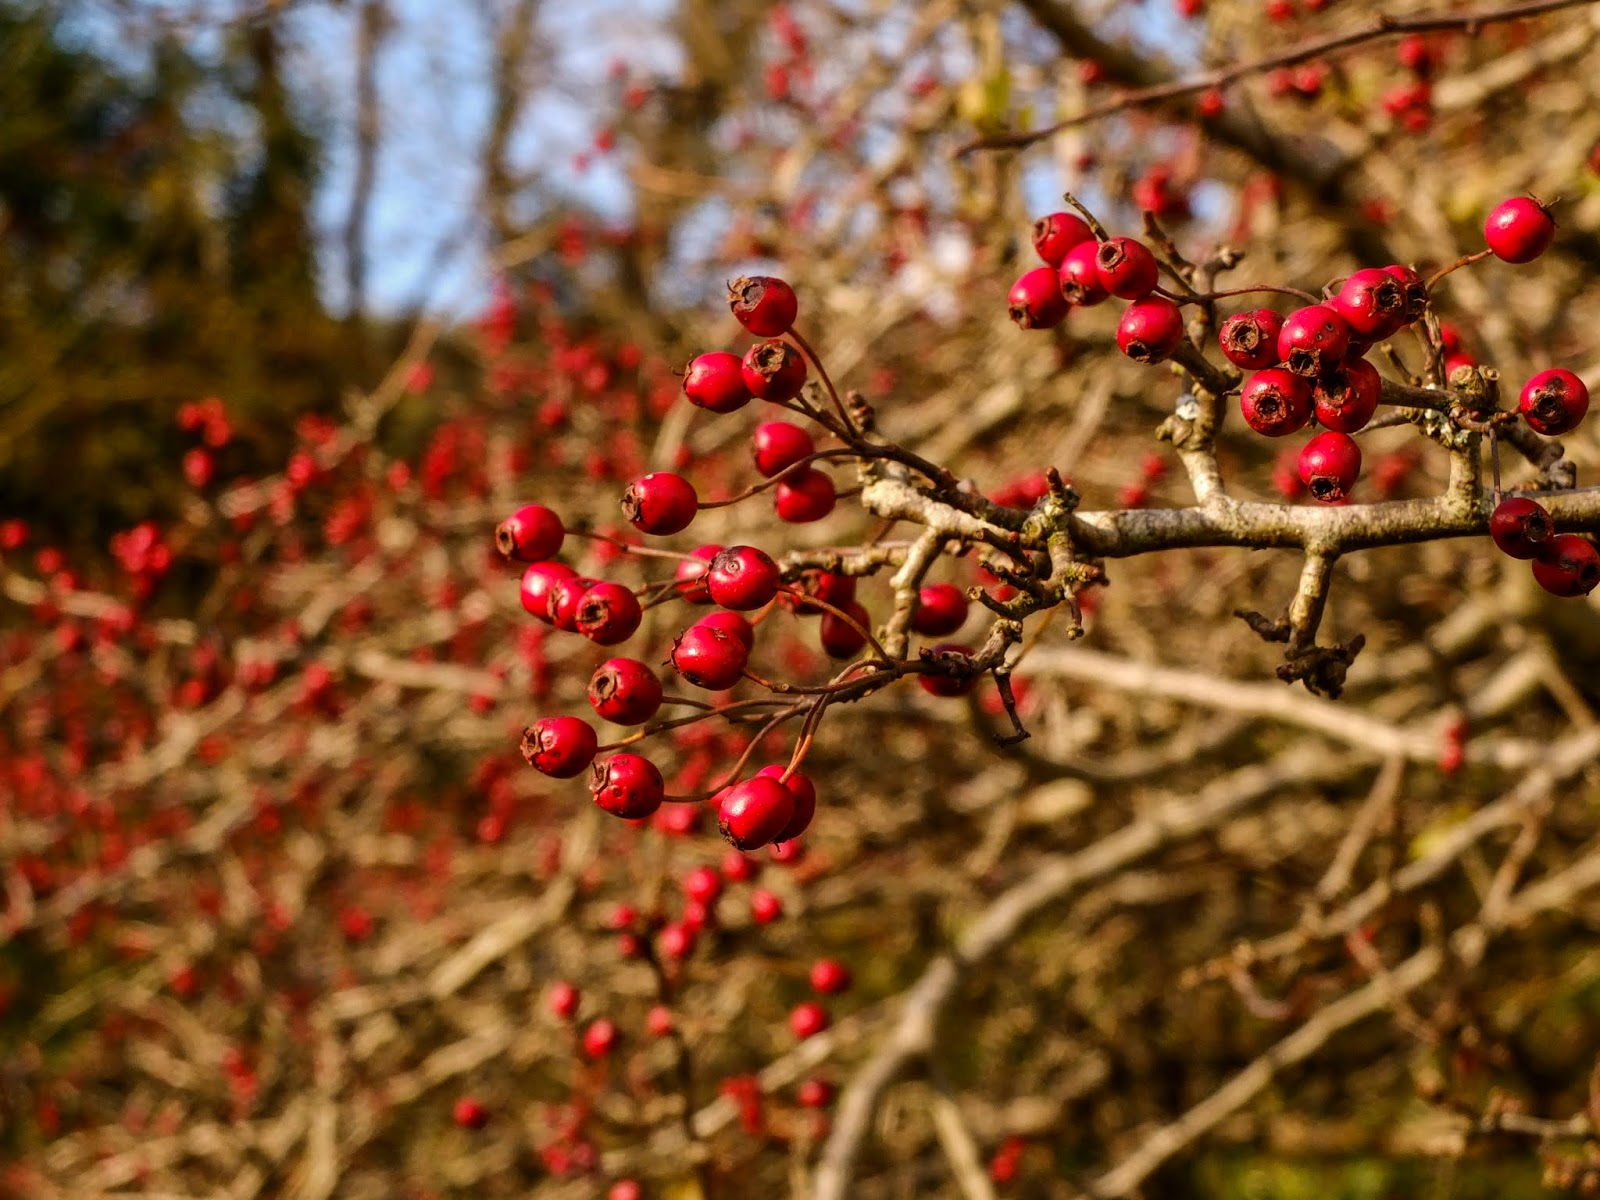 Red berries on tree branches in sunlight.